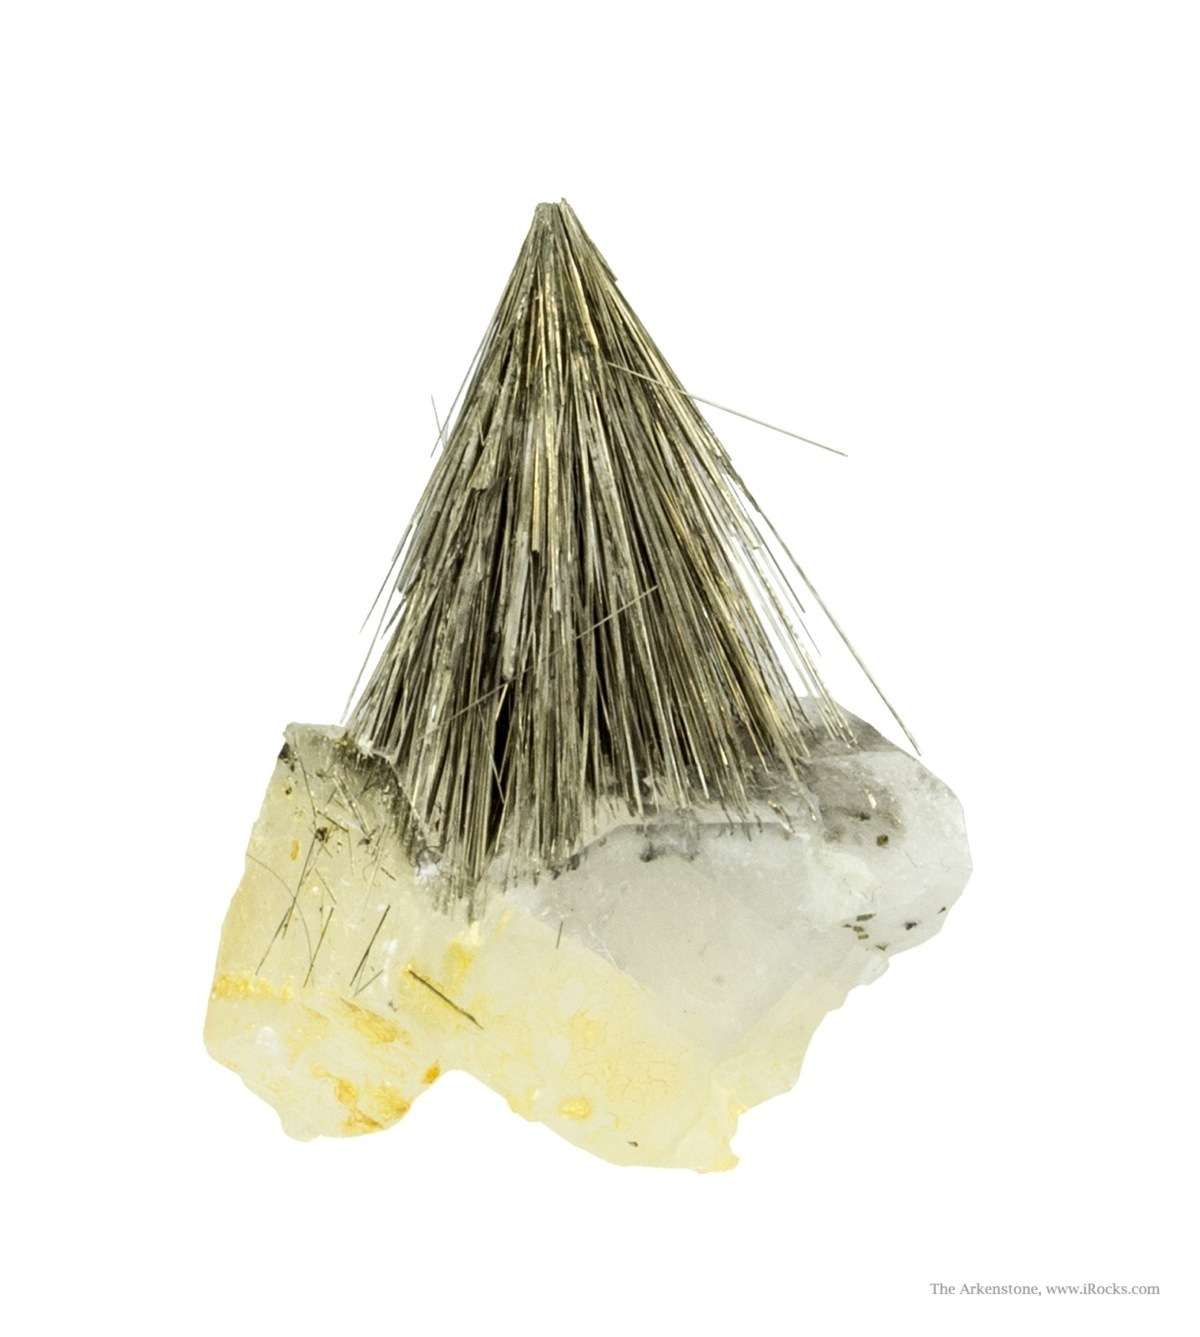 A rich spray acicular millerite crystals 2 cm length perched calcite